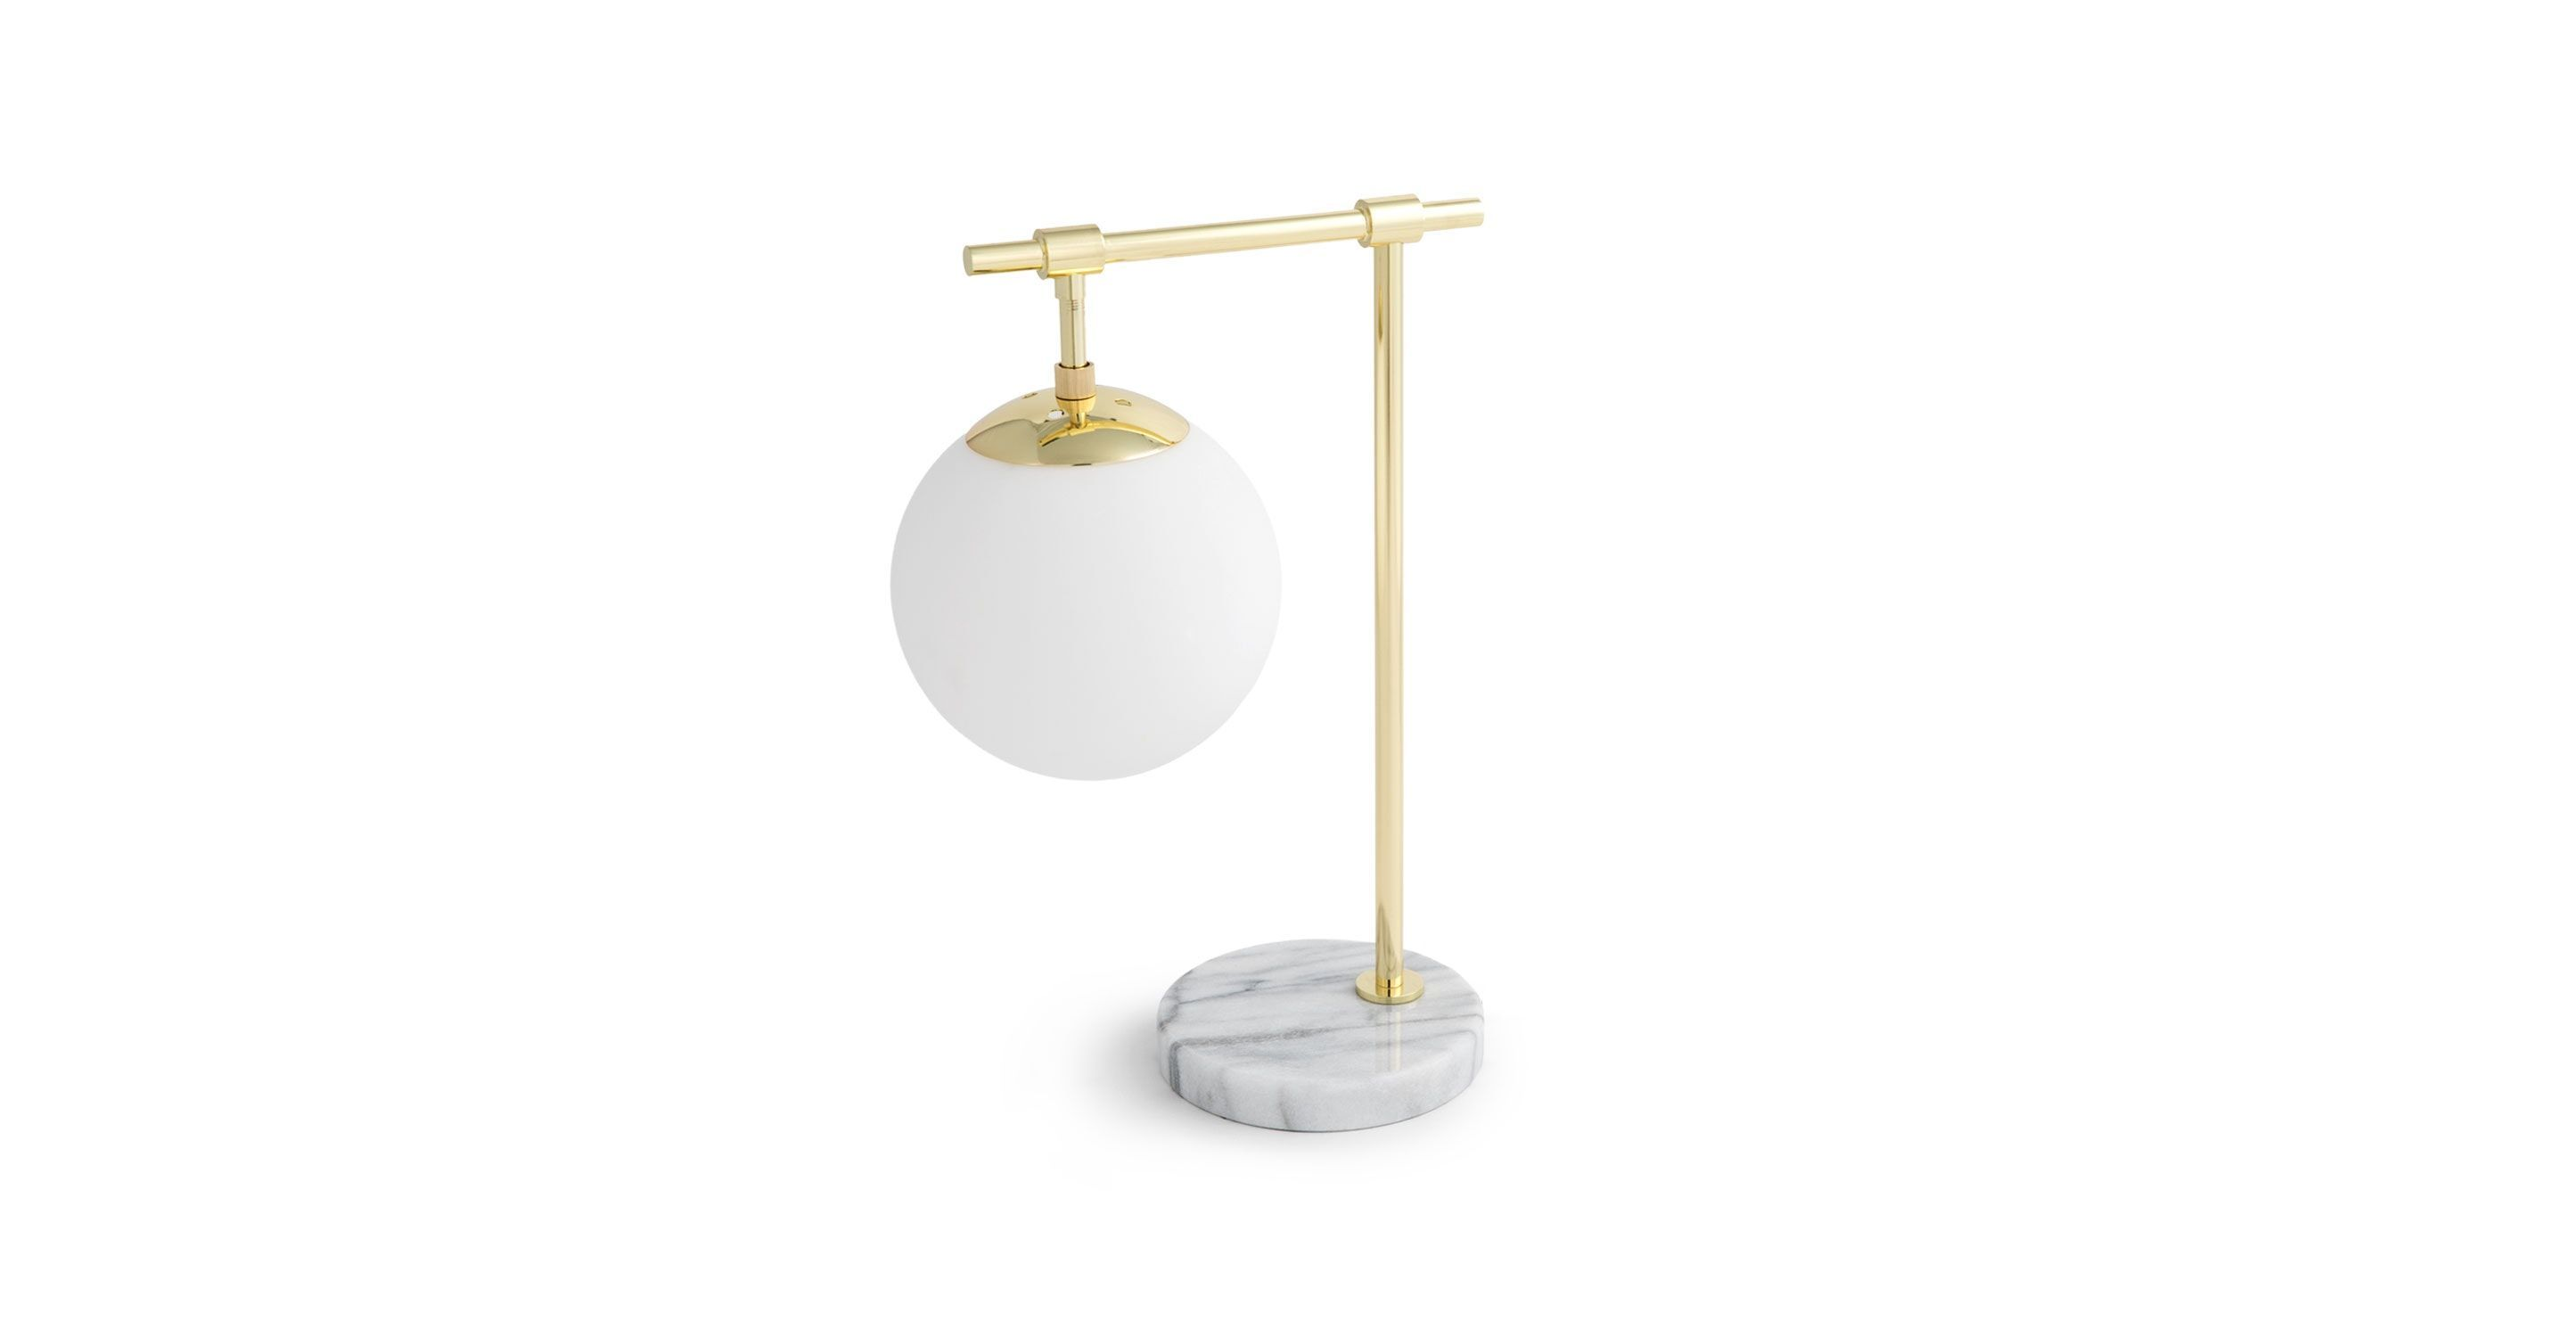 Lovely Gold Table Lamp, Marble Base | Article Pendula Contemporary Lighting